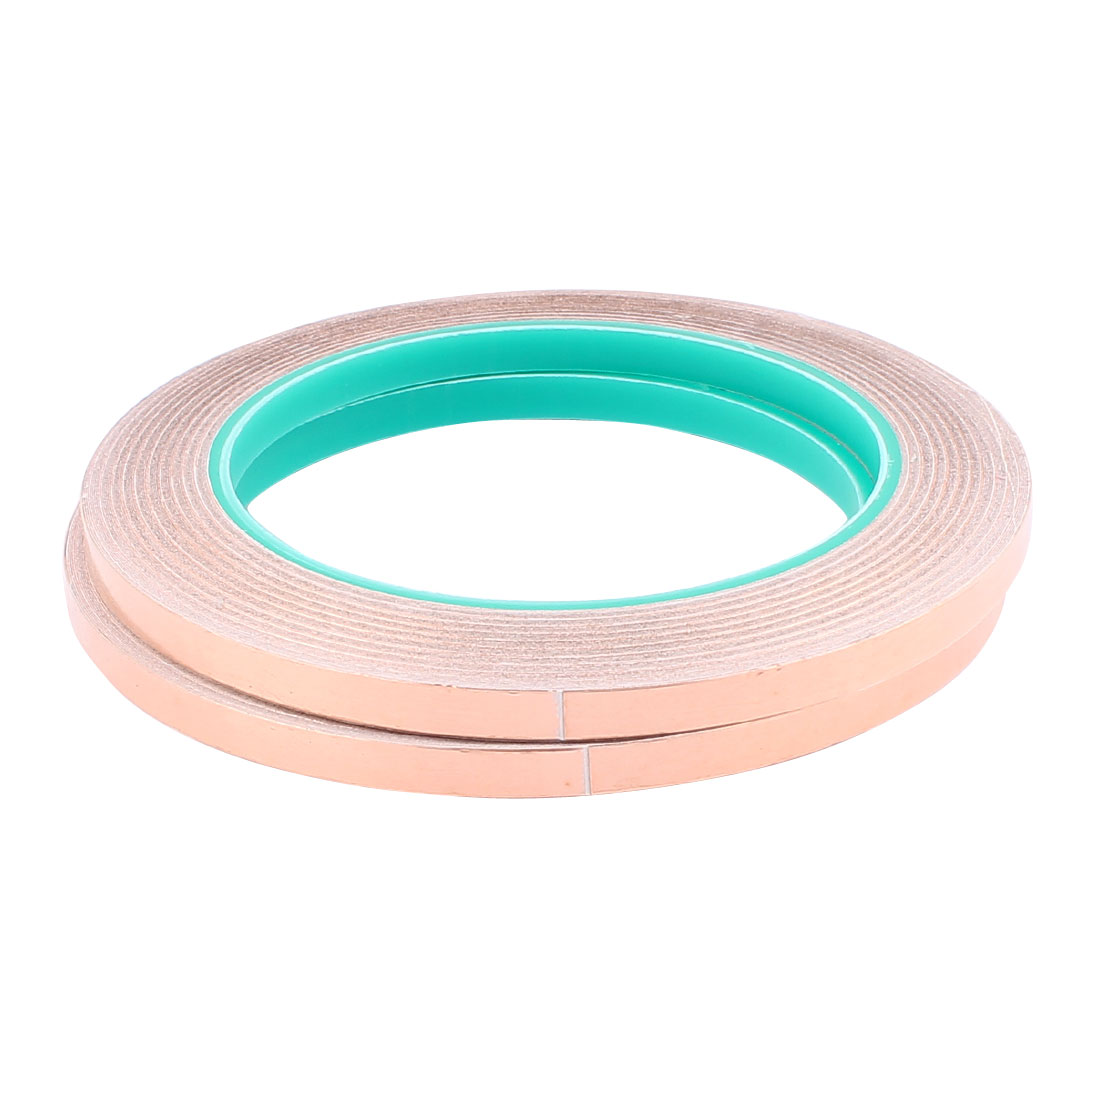 2 Pcs 6mm Width 20m Long DIY Adhesive Double Sided Conductive Copper Foil Tape